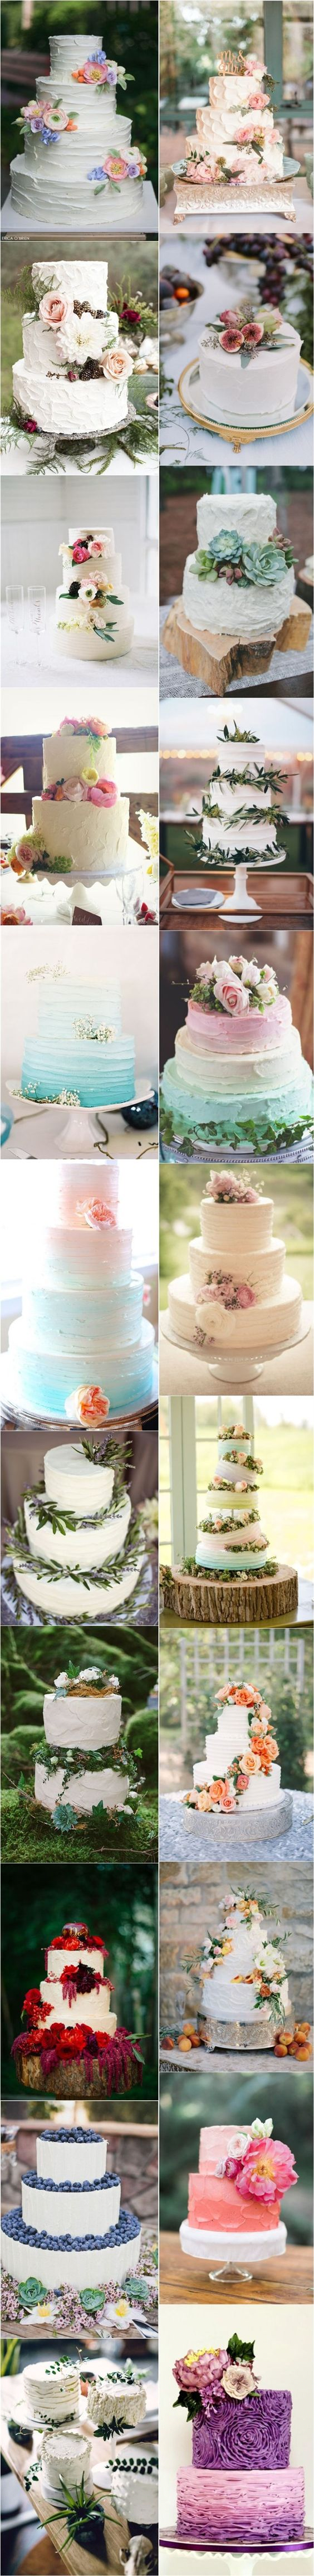 Buttercream wedding cakes. Elegance and texture!!